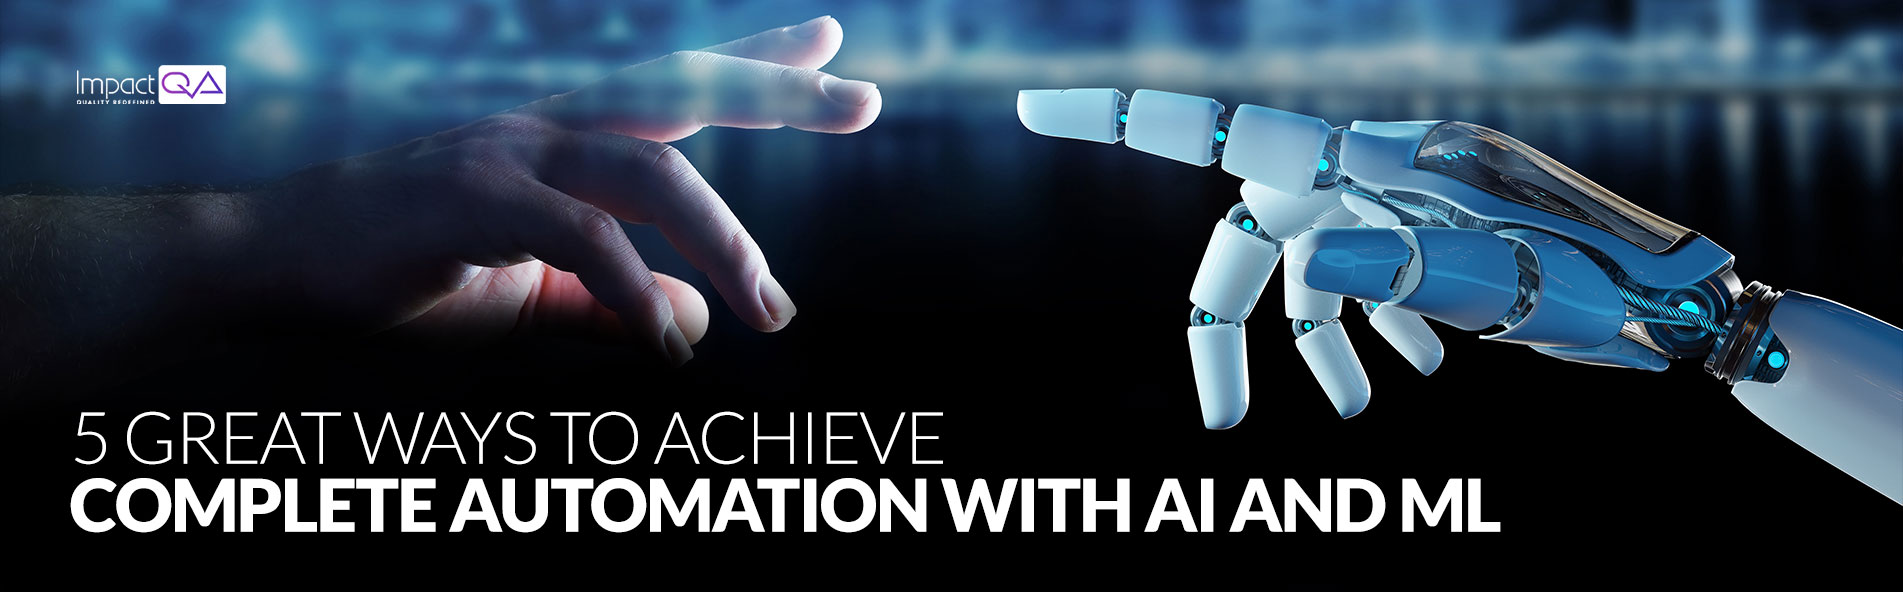 5 Great Ways to Achieve Complete Automation with AI and ML